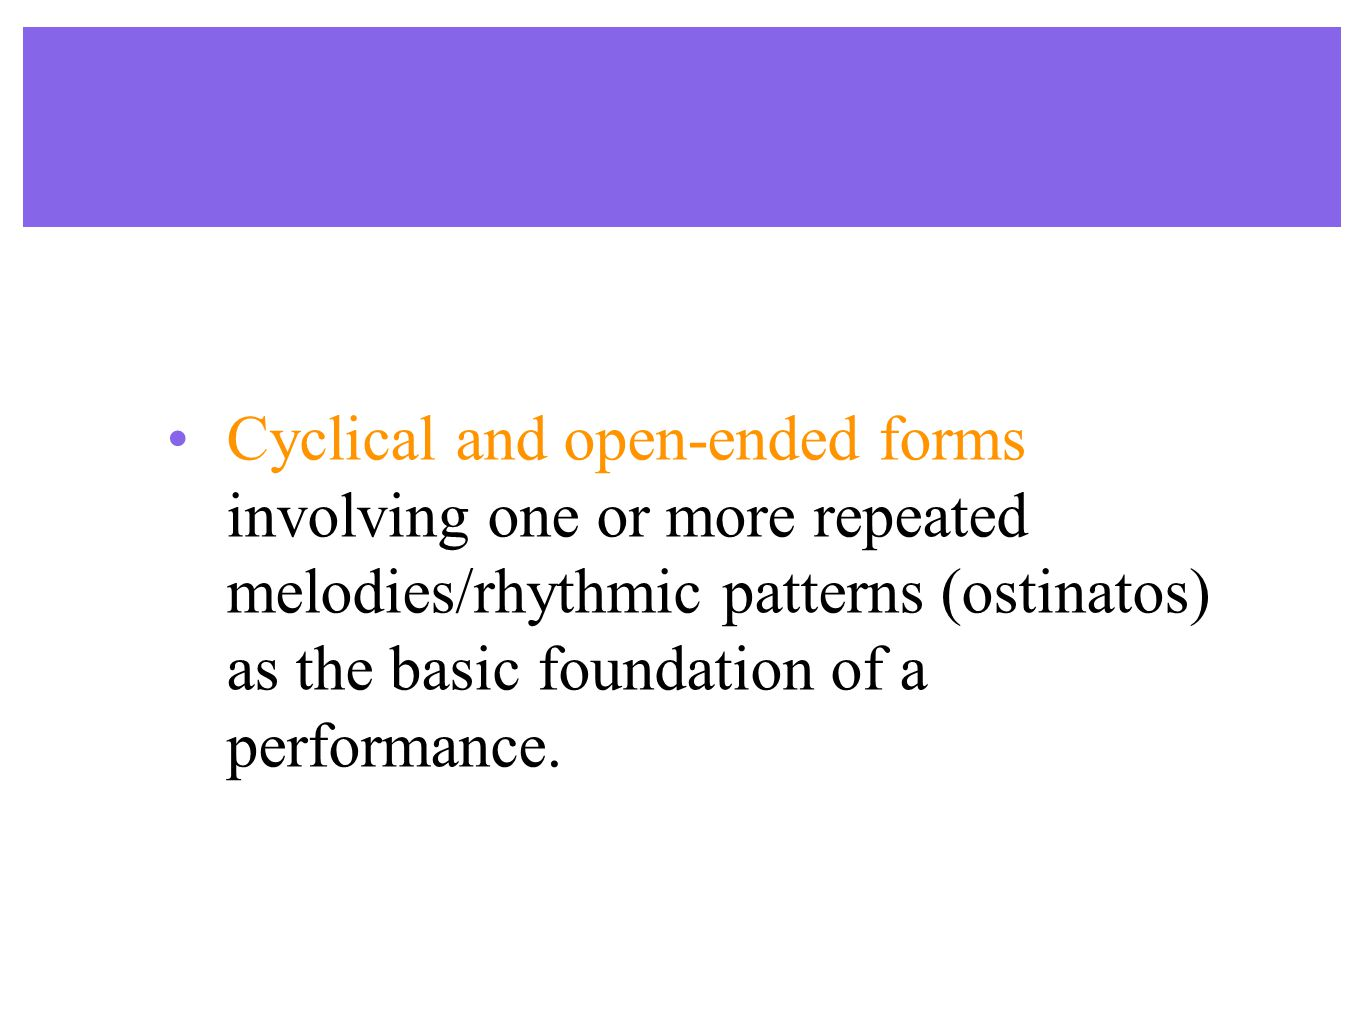 Cyclical and open-ended forms involving one or more repeated melodies/rhythmic patterns (ostinatos) as the basic foundation of a performance.